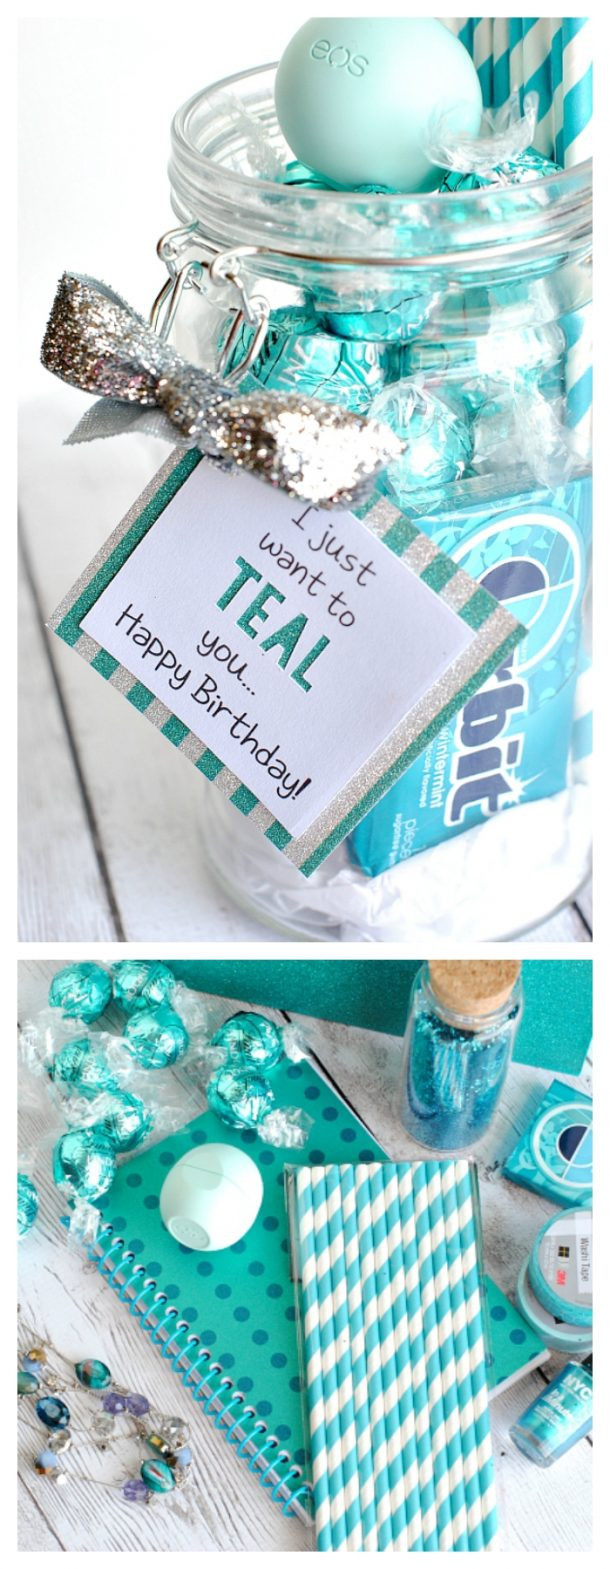 Cute Gift Basket Ideas  Do it Yourself Gift Basket Ideas for All Occasions